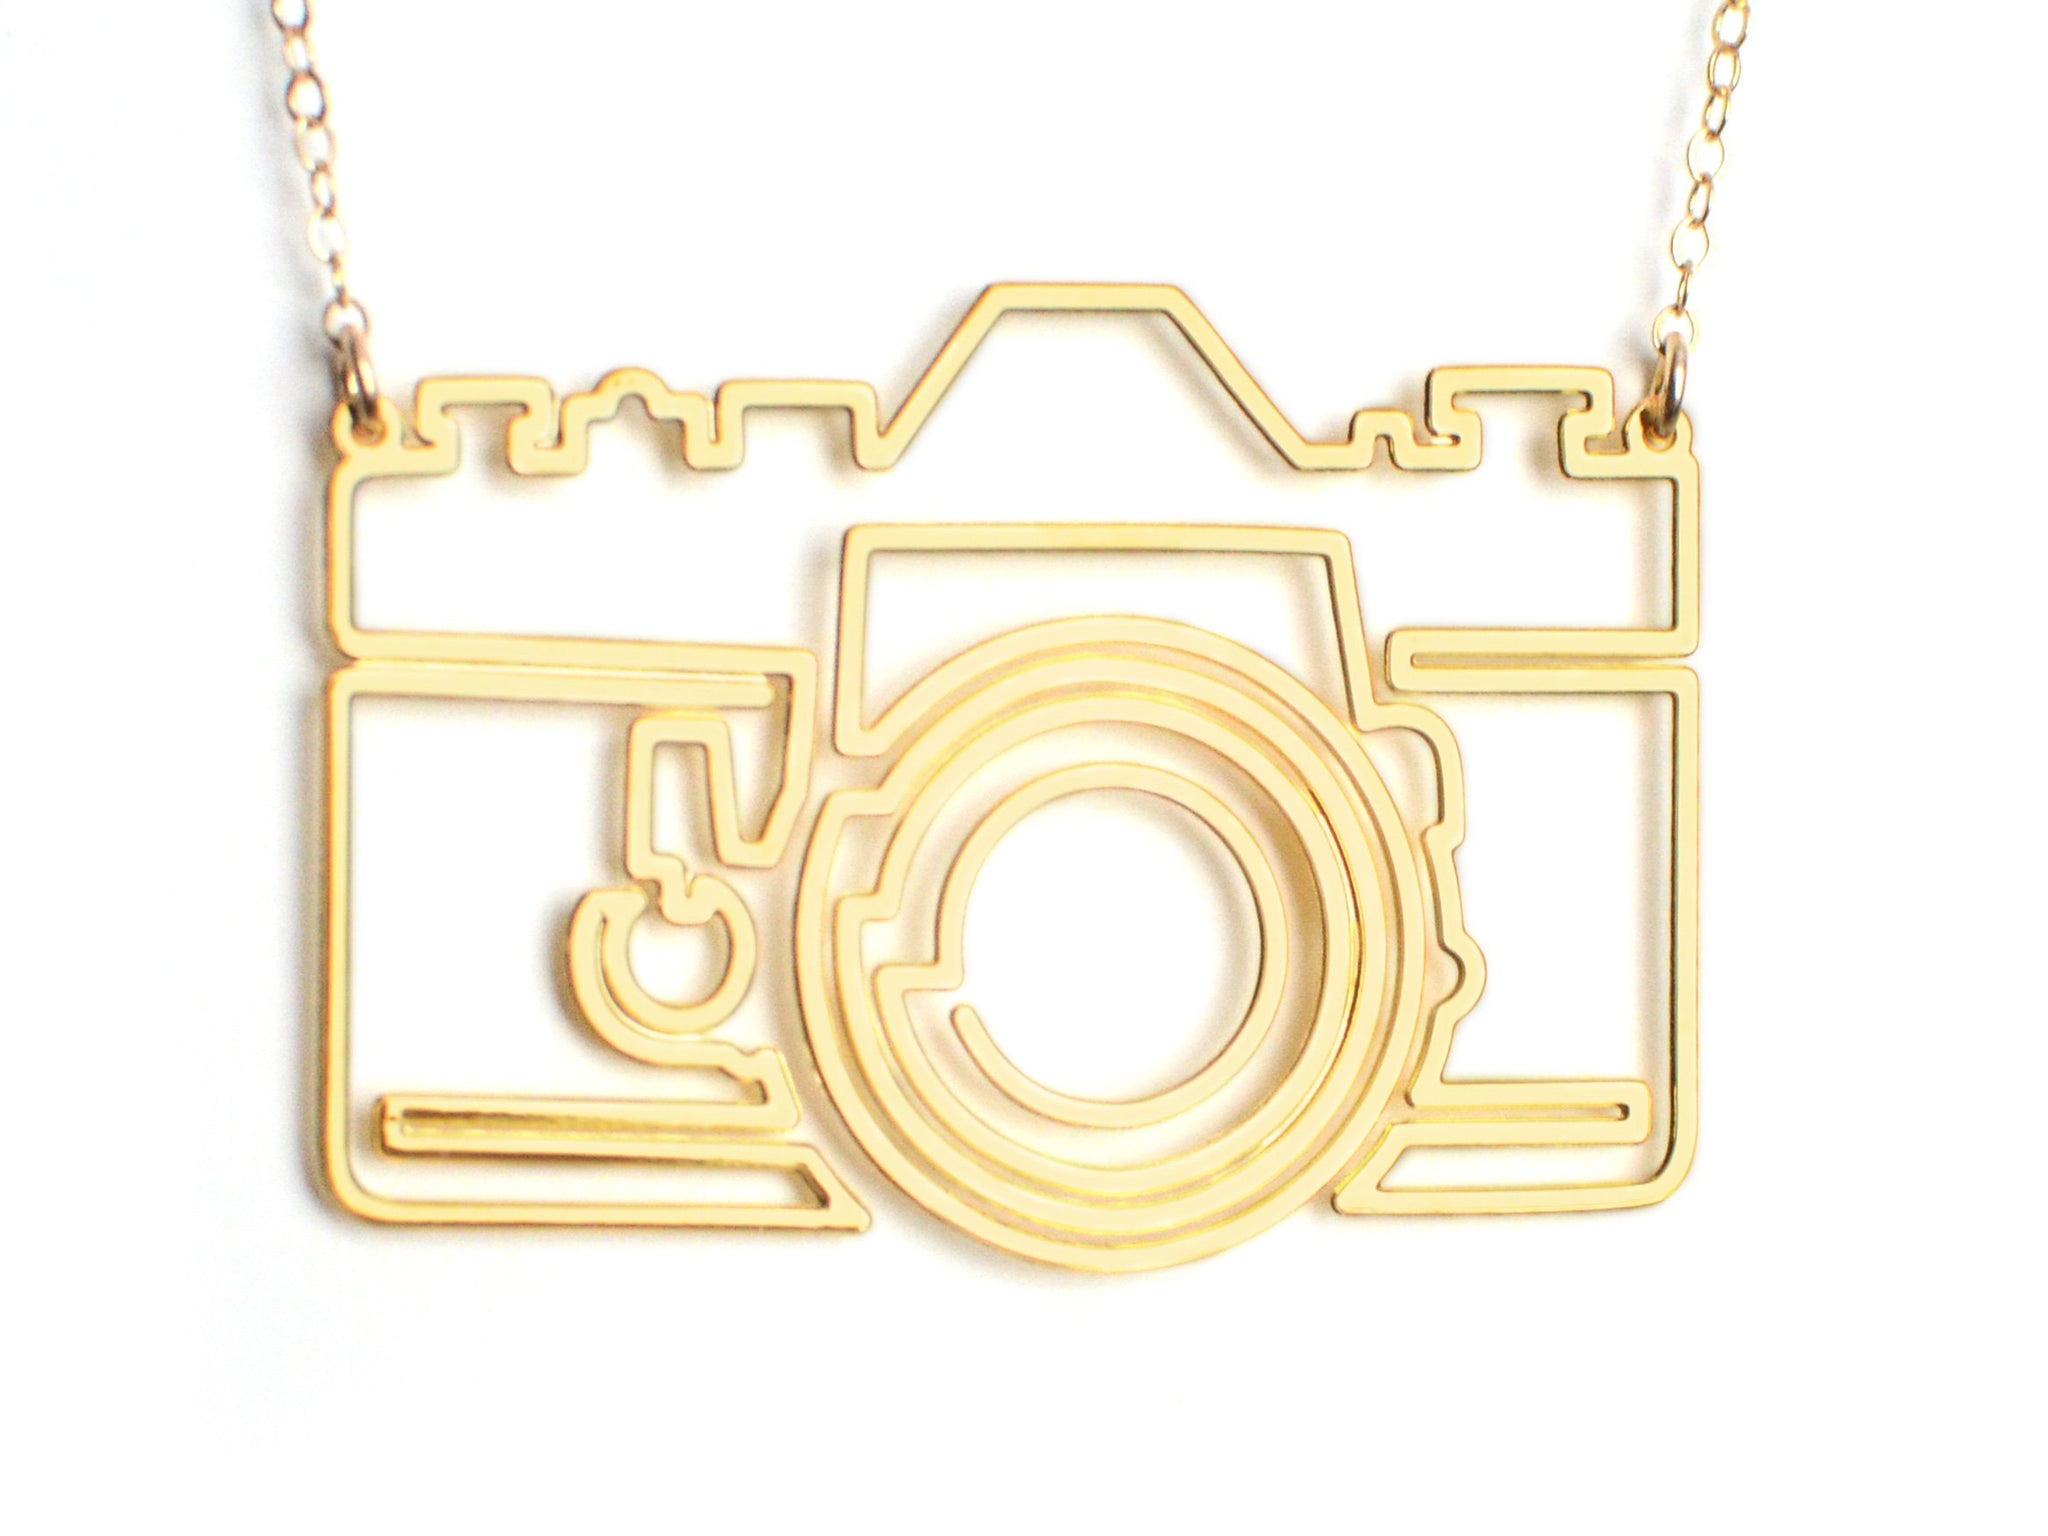 Photo Camera Necklace - Brevity Jewelry - Made in USA - Affordable Gold and Silver Jewelry